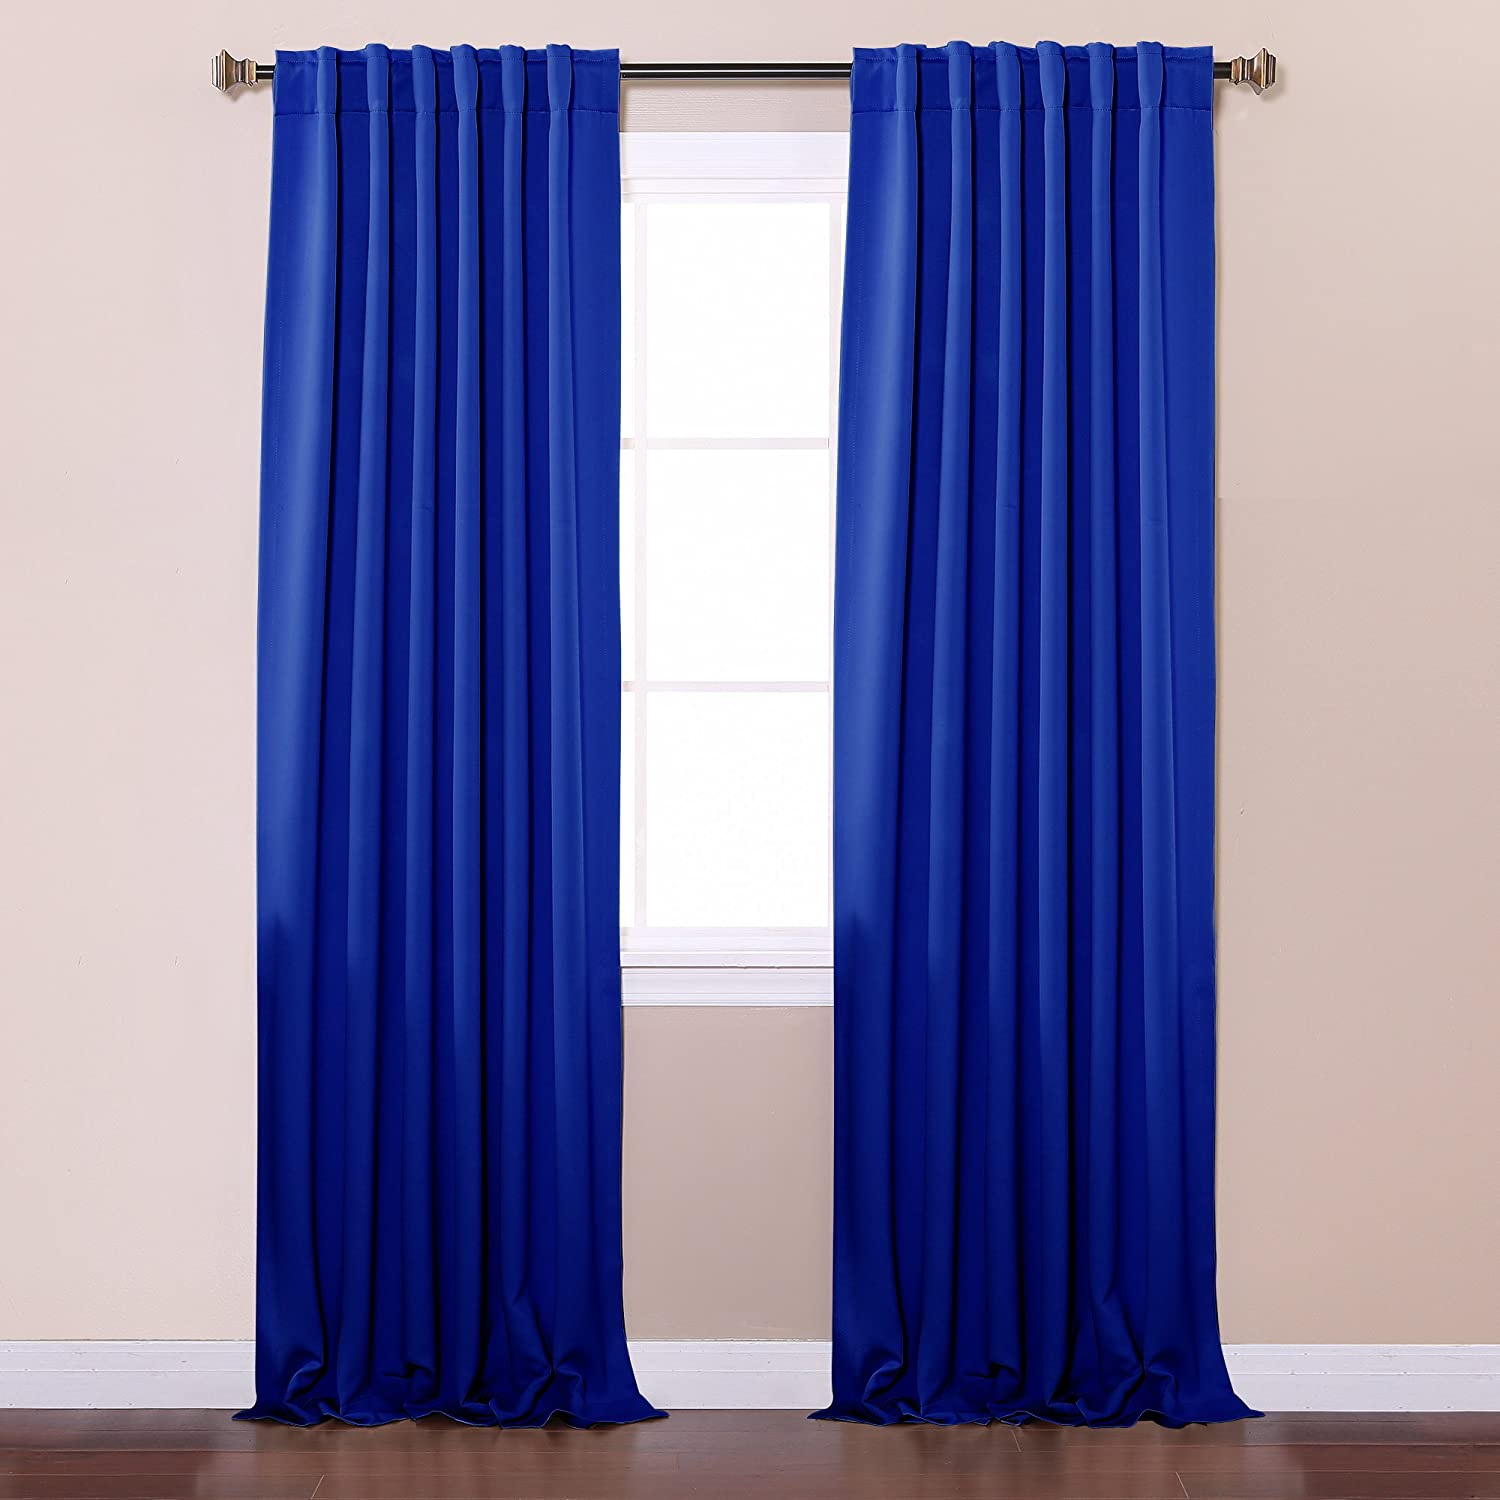 garden curtain product lush free of forest blue today inch home window panel curtains x overstock decor set pair shipping